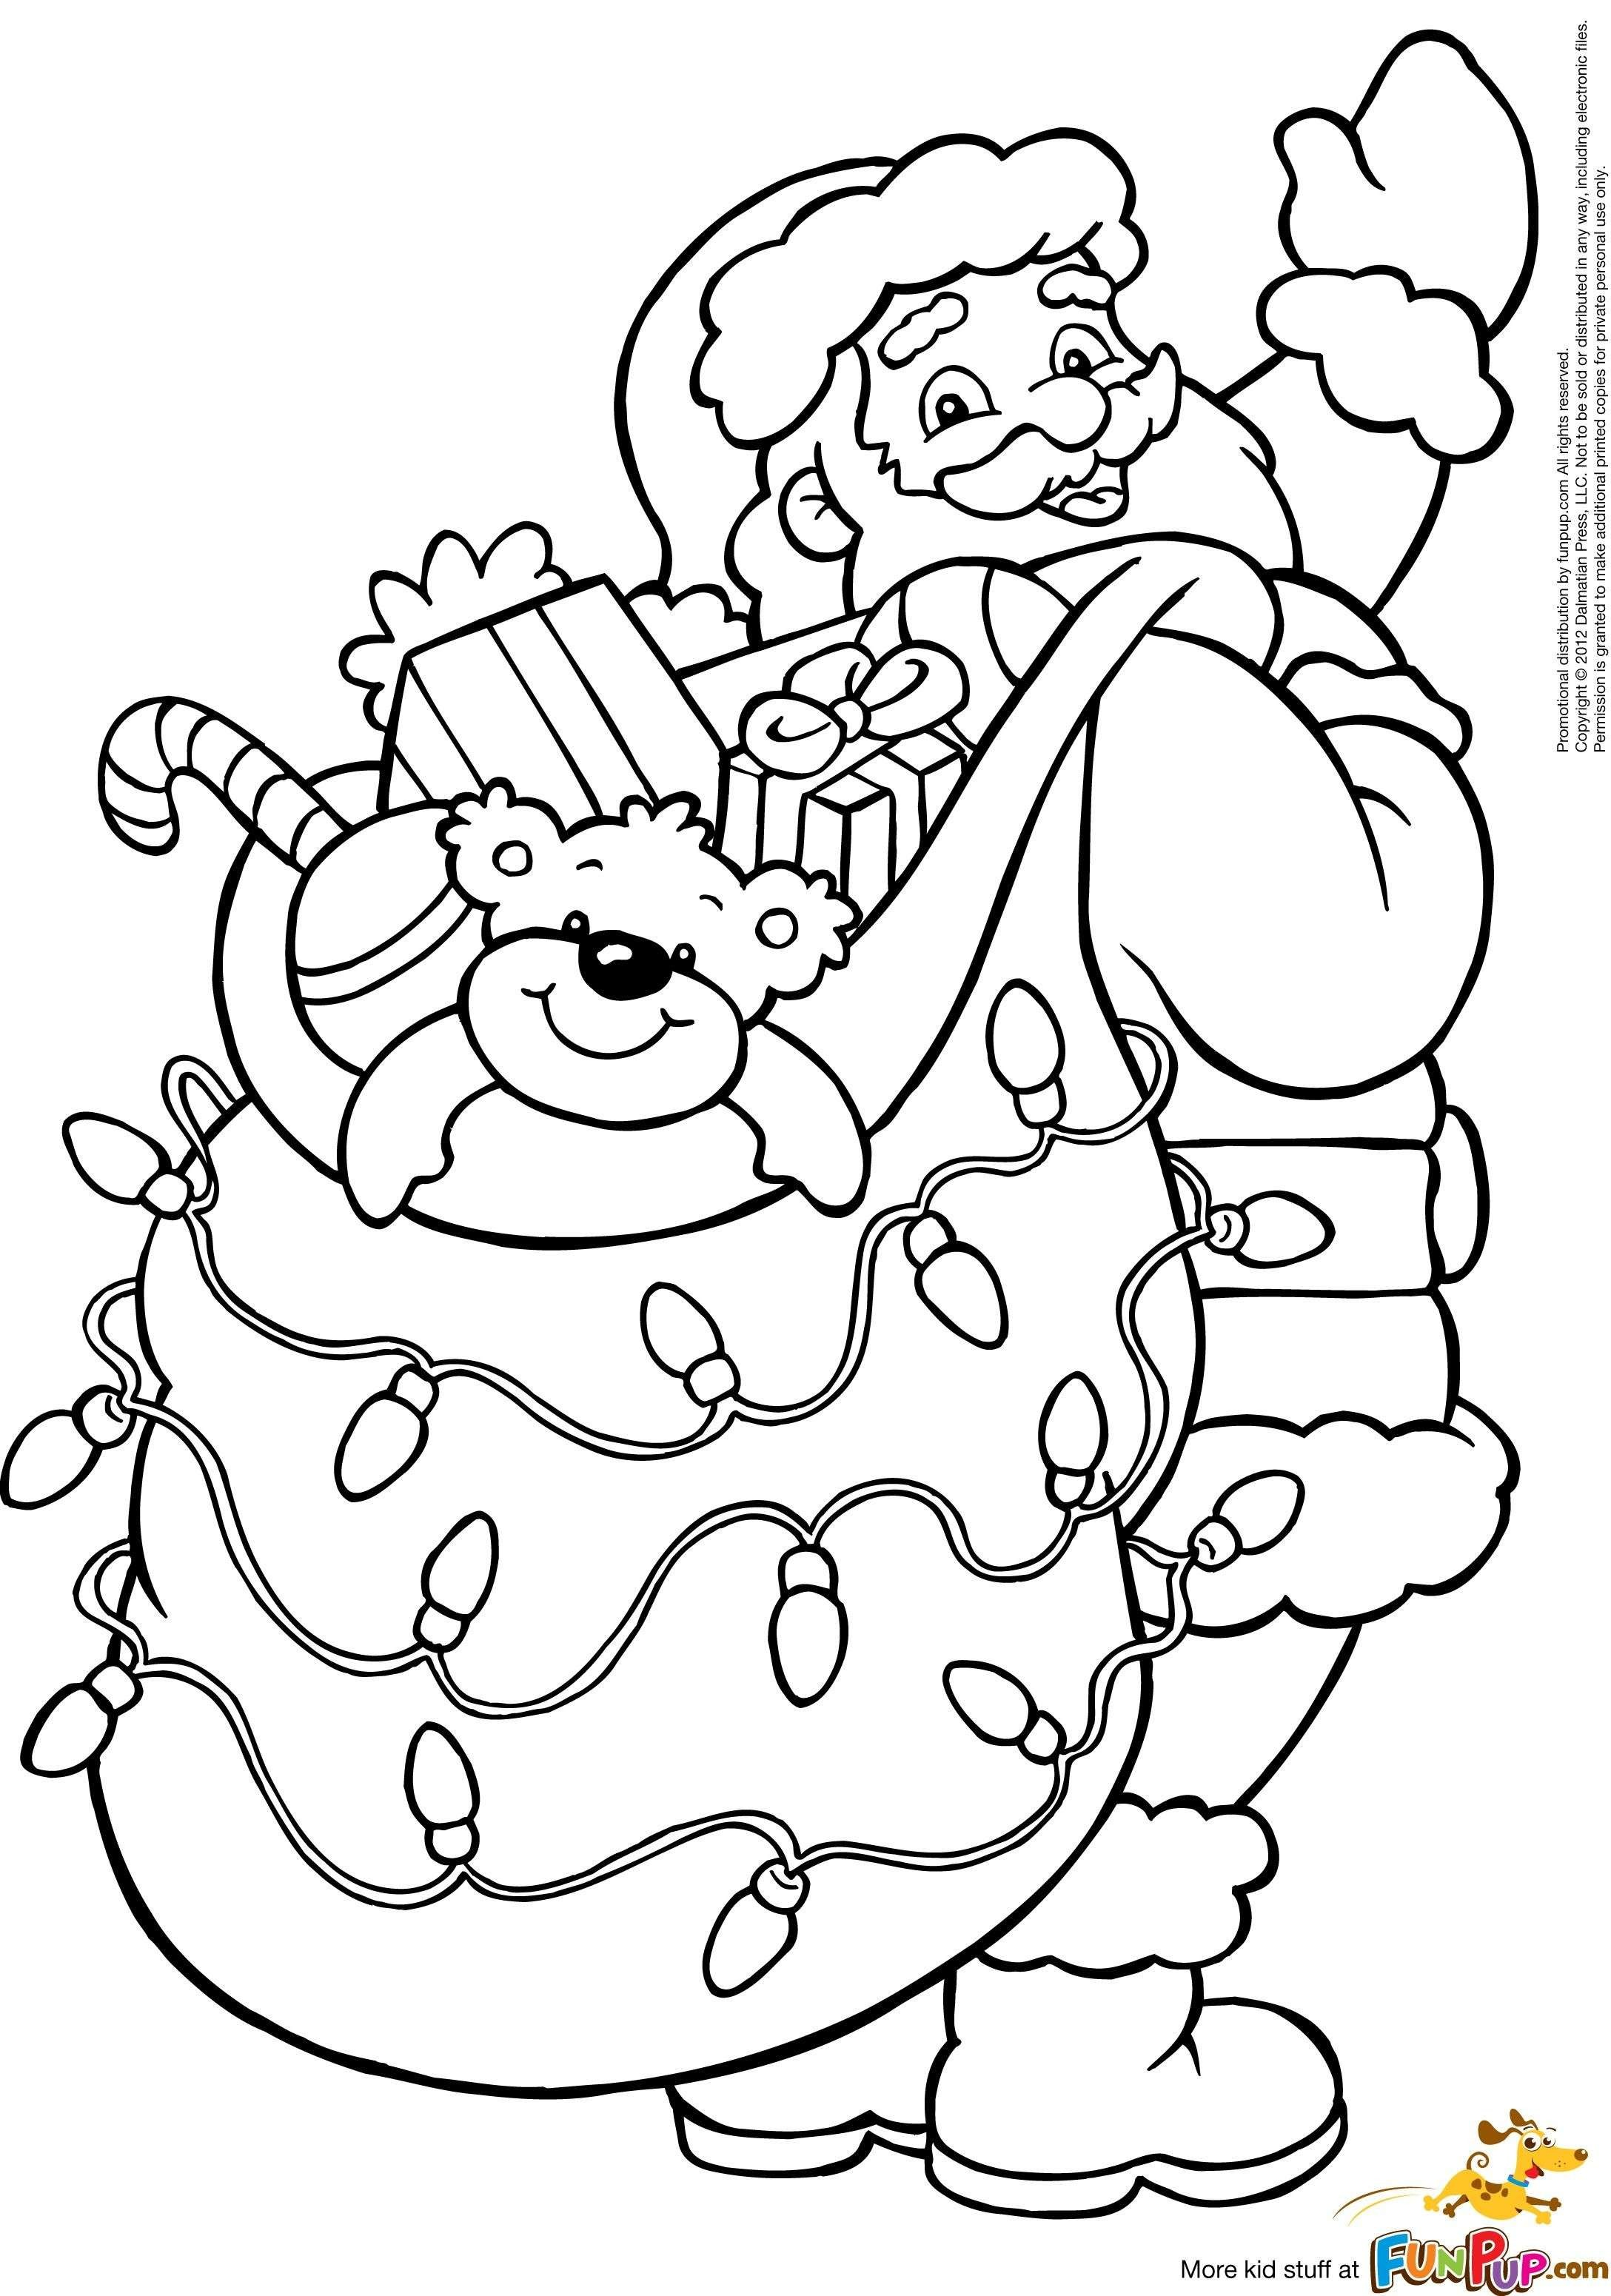 Coloring Pages Of Santa Claus For Kids 6 With Christmas New